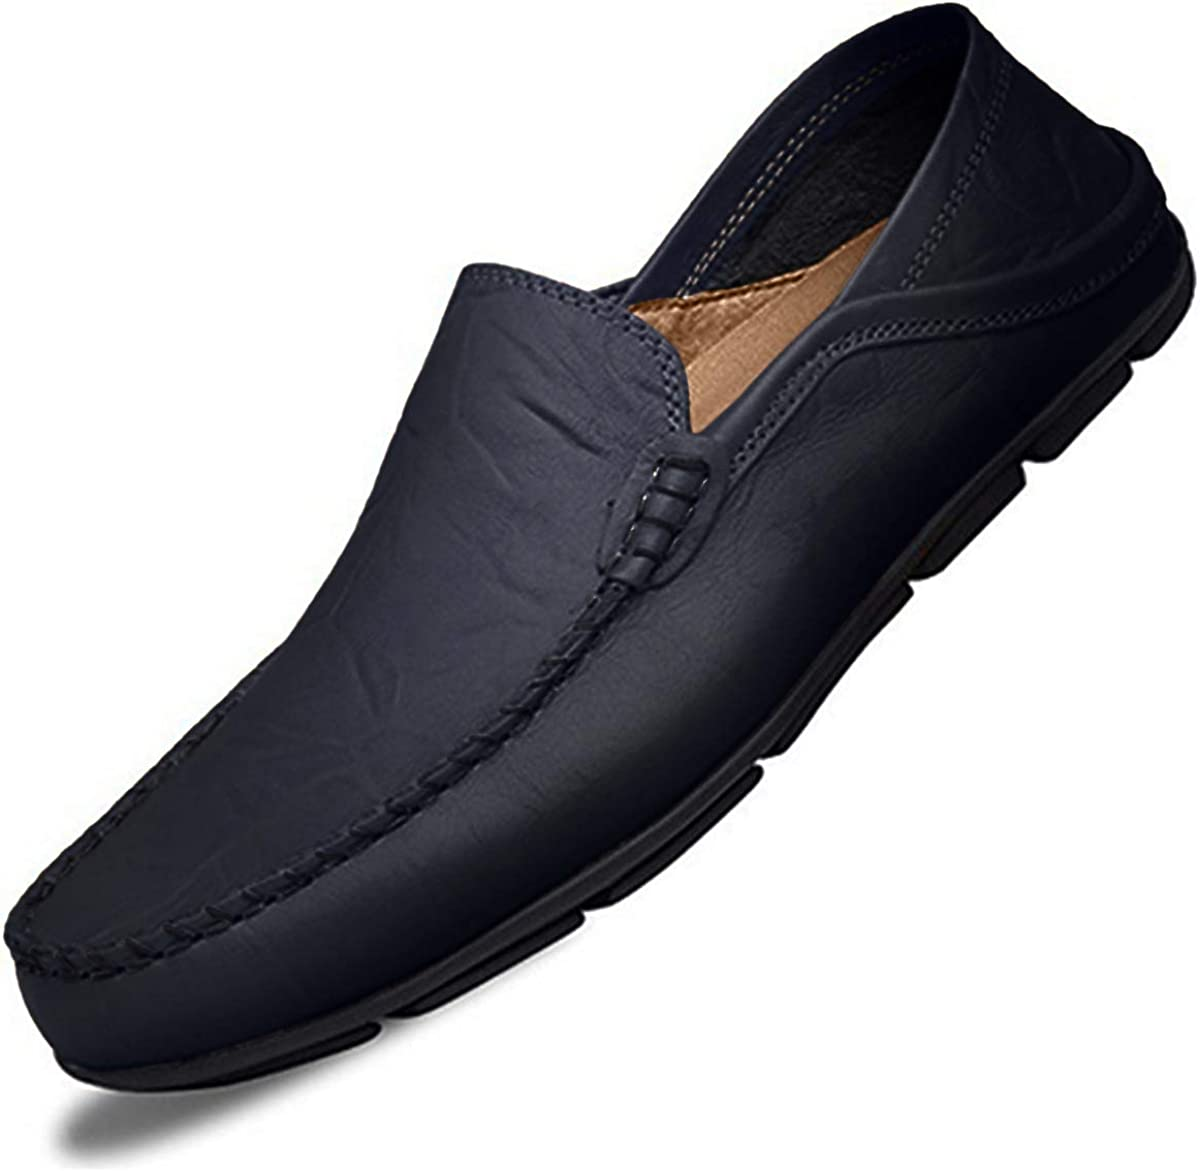 Men/'s Driving Shoes Genuine Leather Light Casual Slipper Leather Dress Shoes US